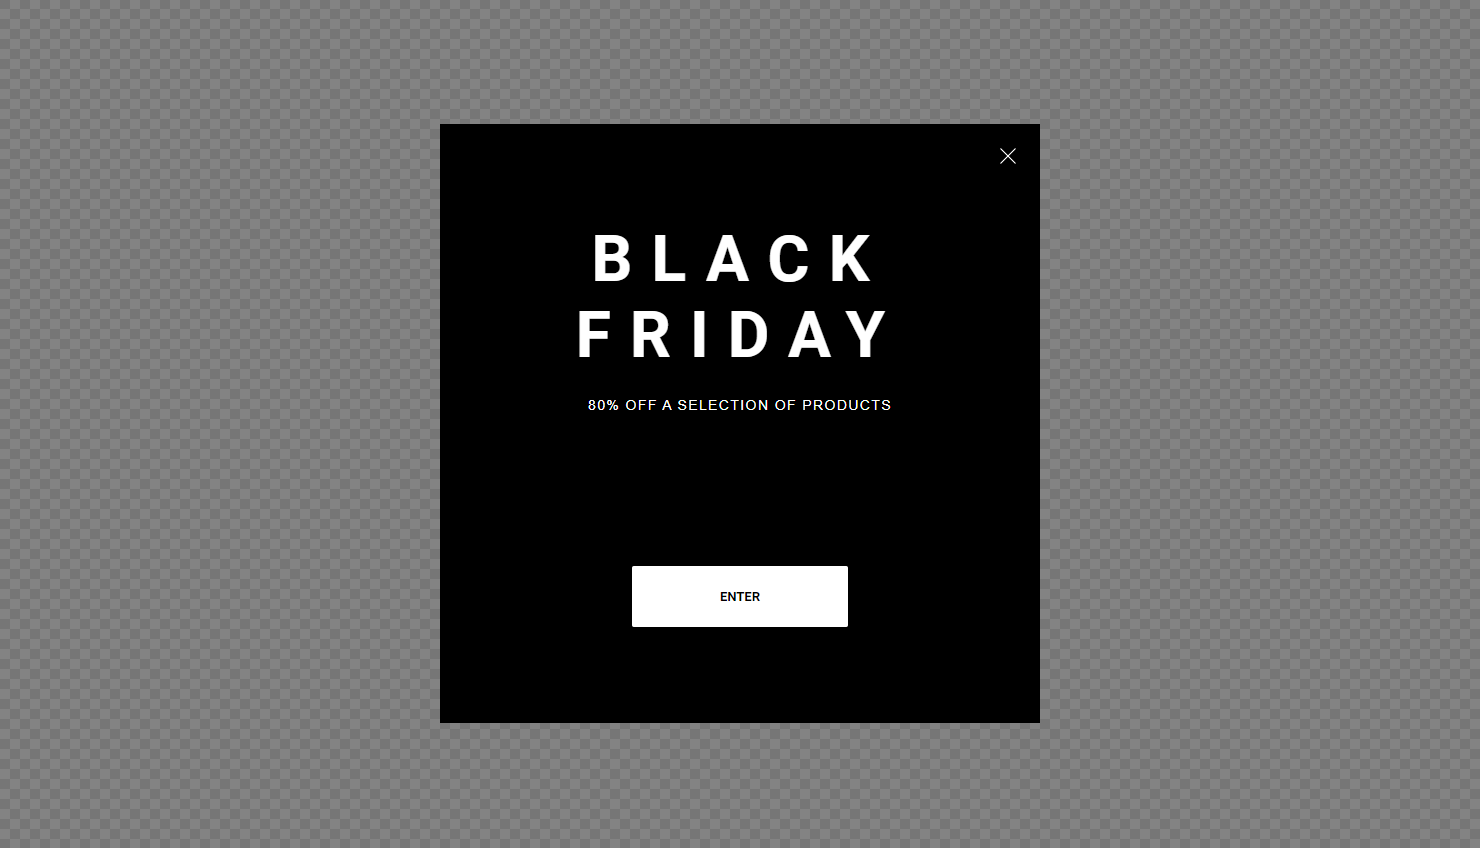 wisepops content blackfriday fullscreen popup design